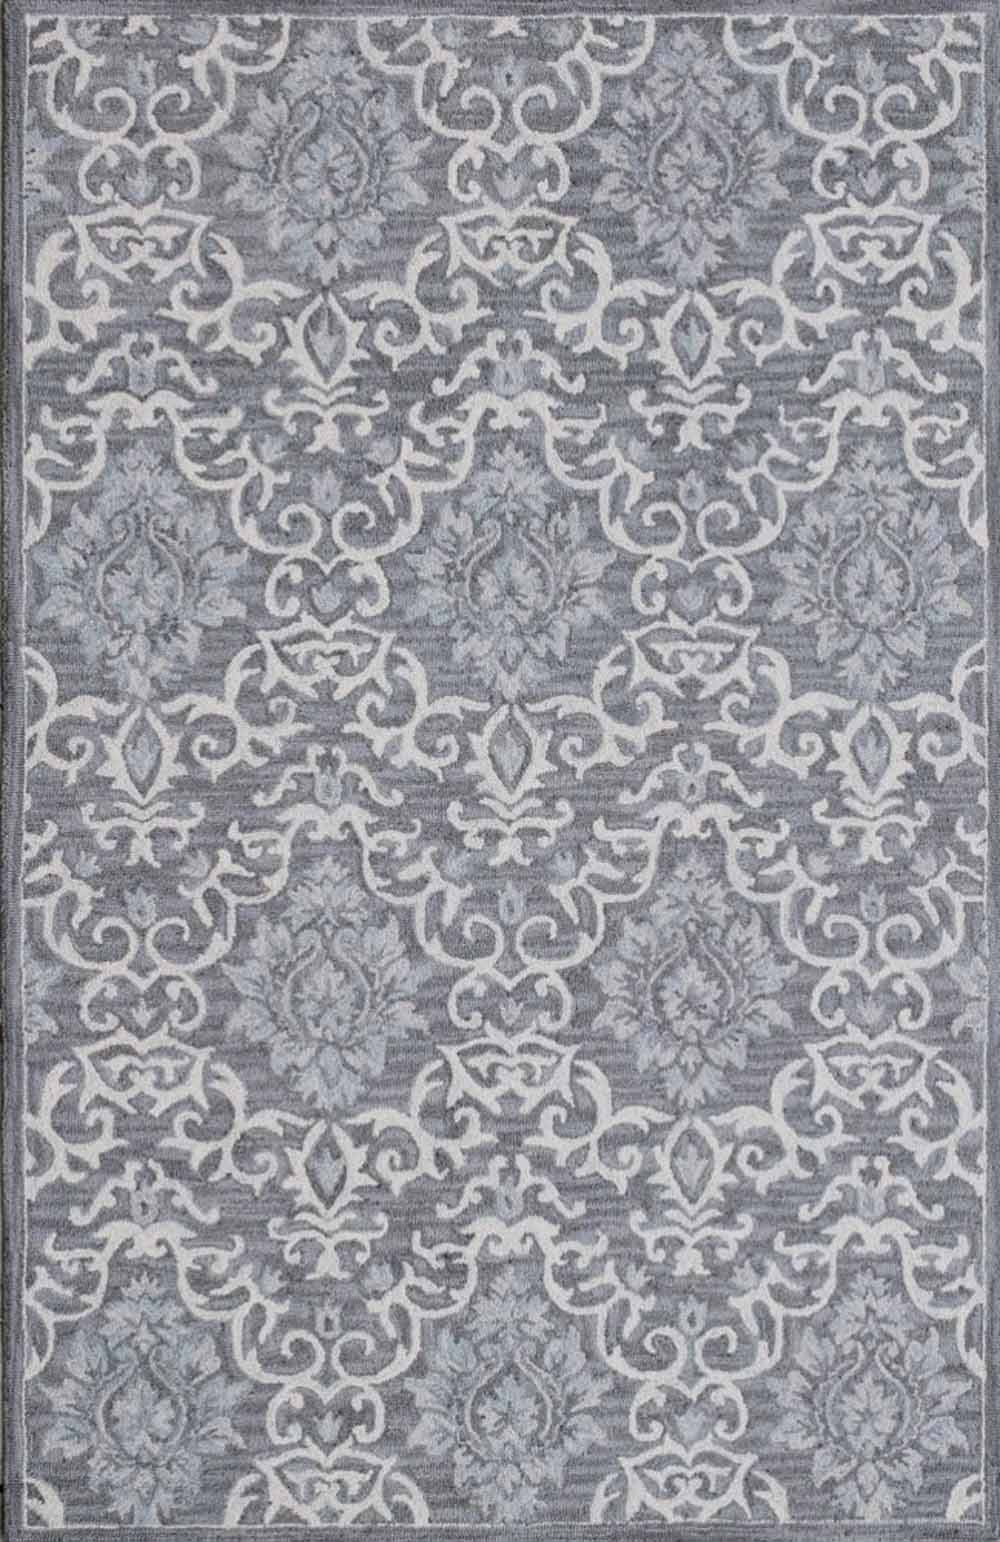 Dynamic Area Rugs Galleria 7868-901 Grey Geometric Design